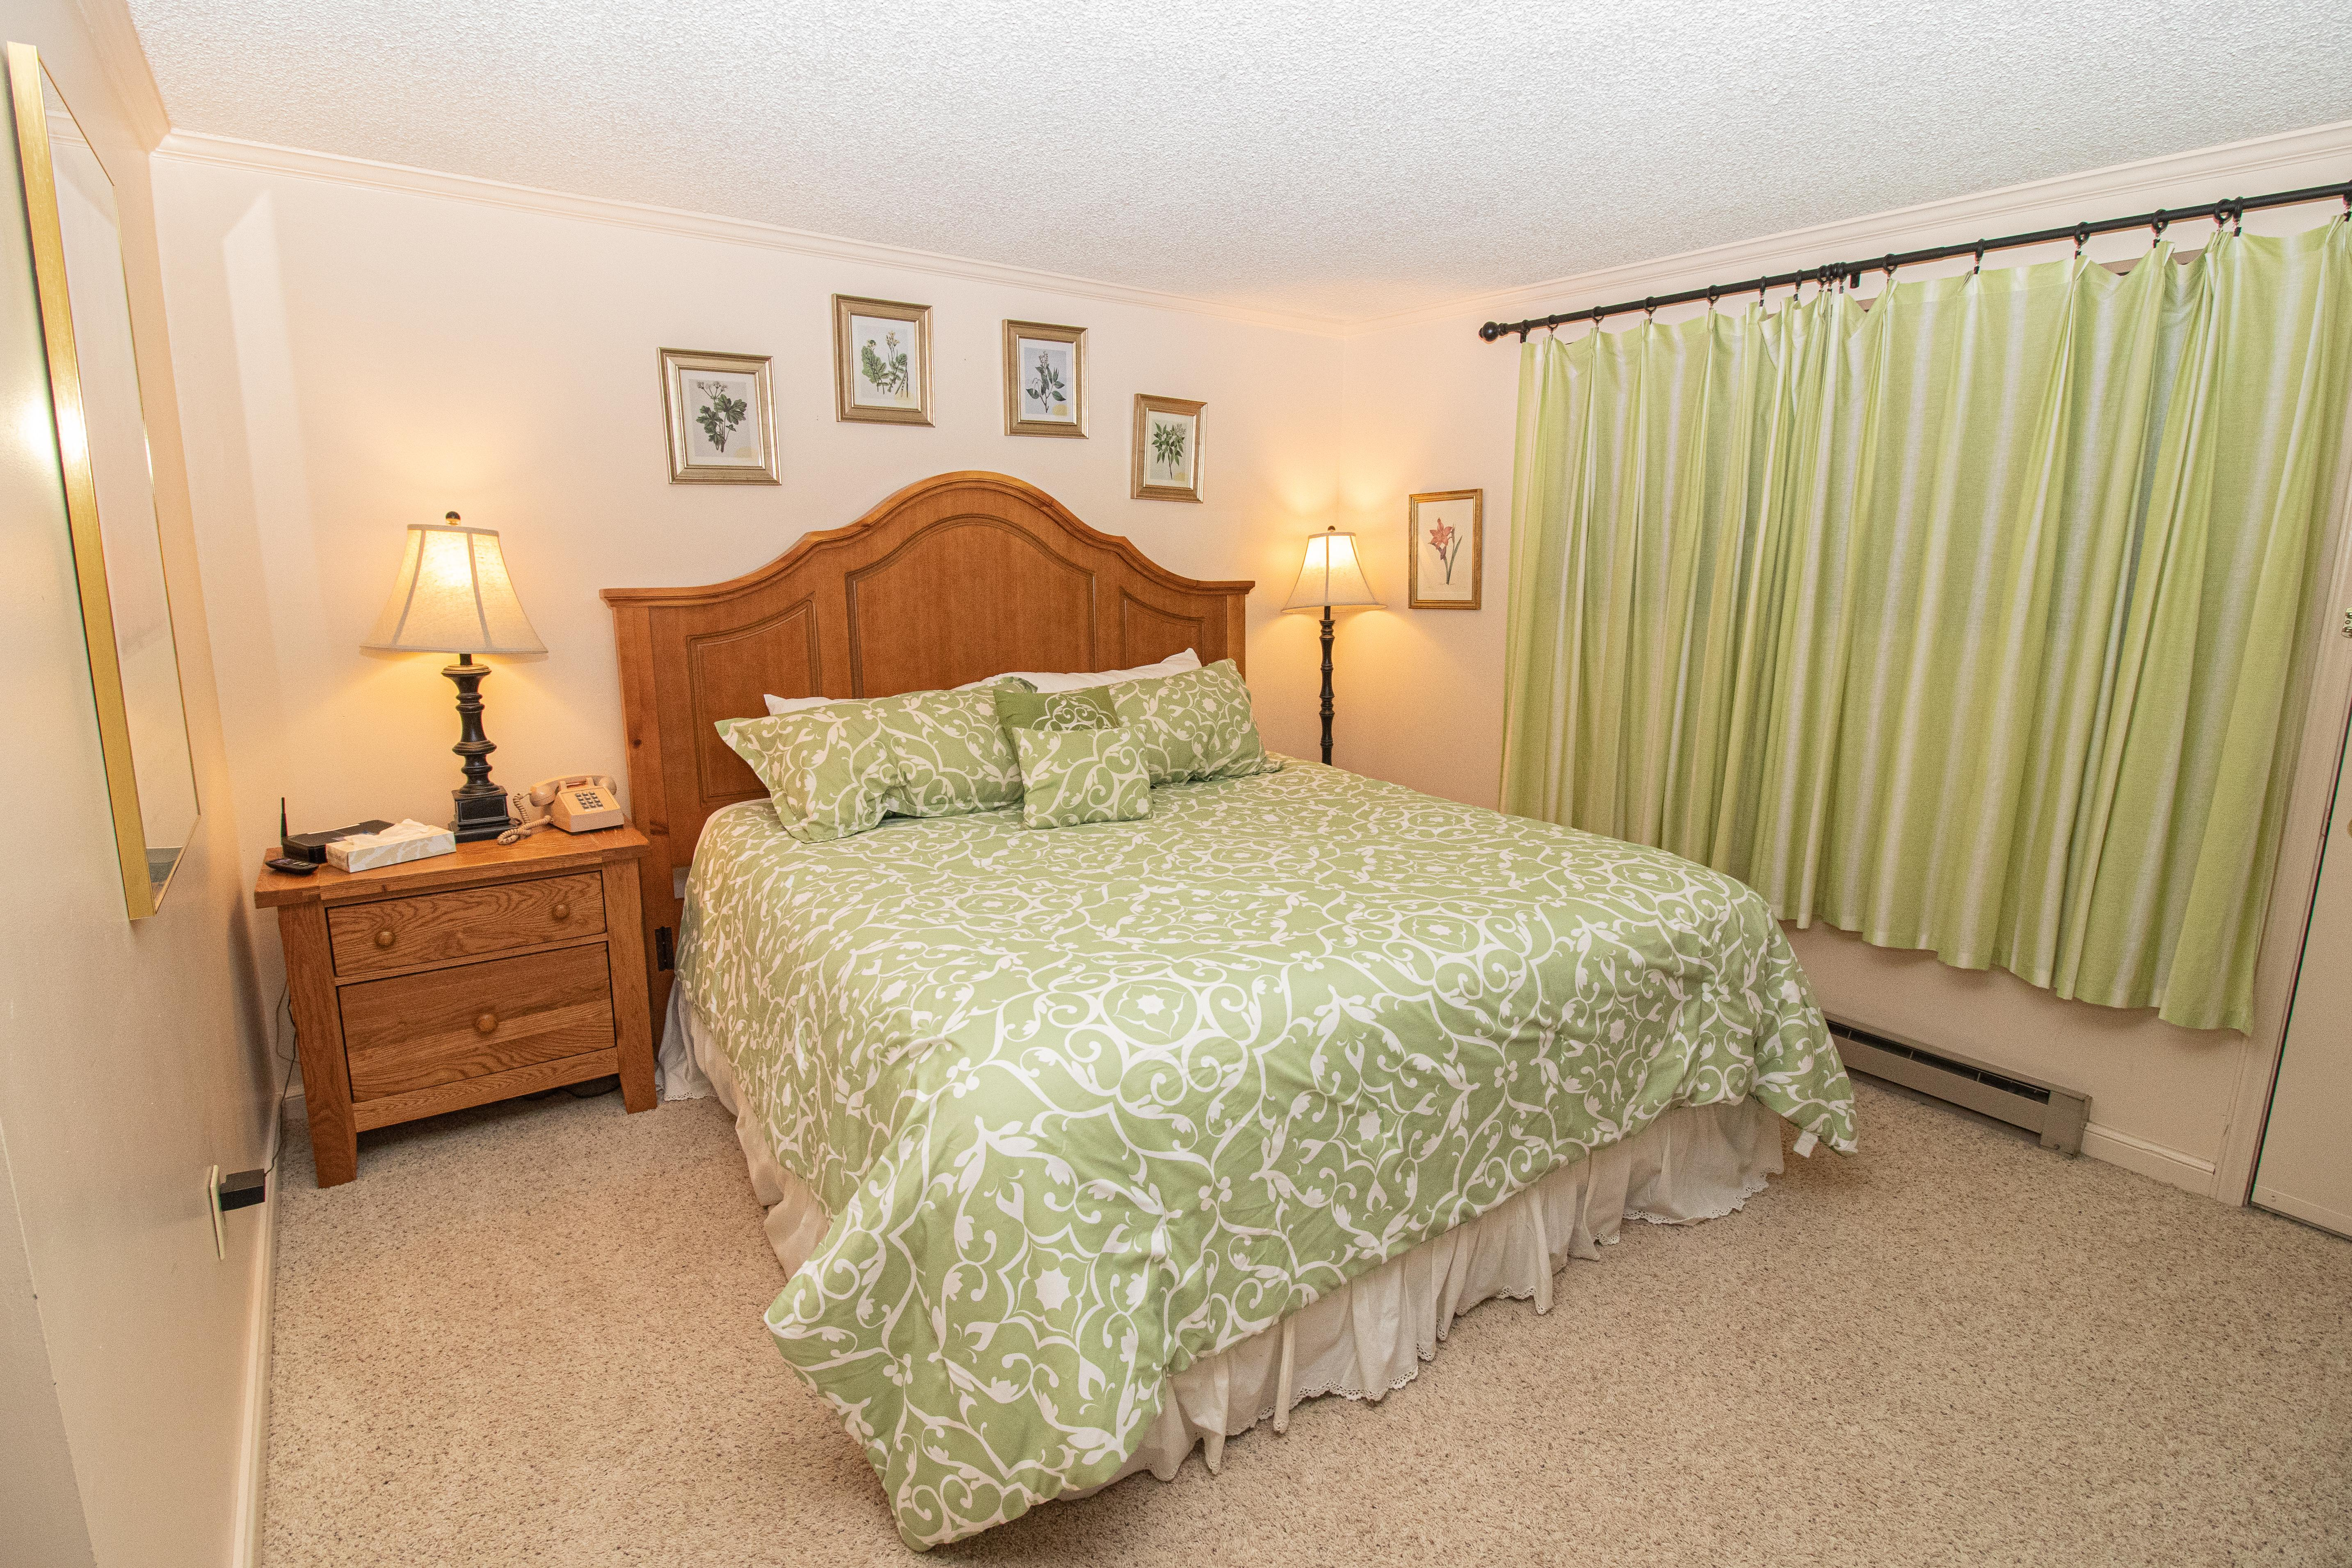 King-sized bed in master bedroom!